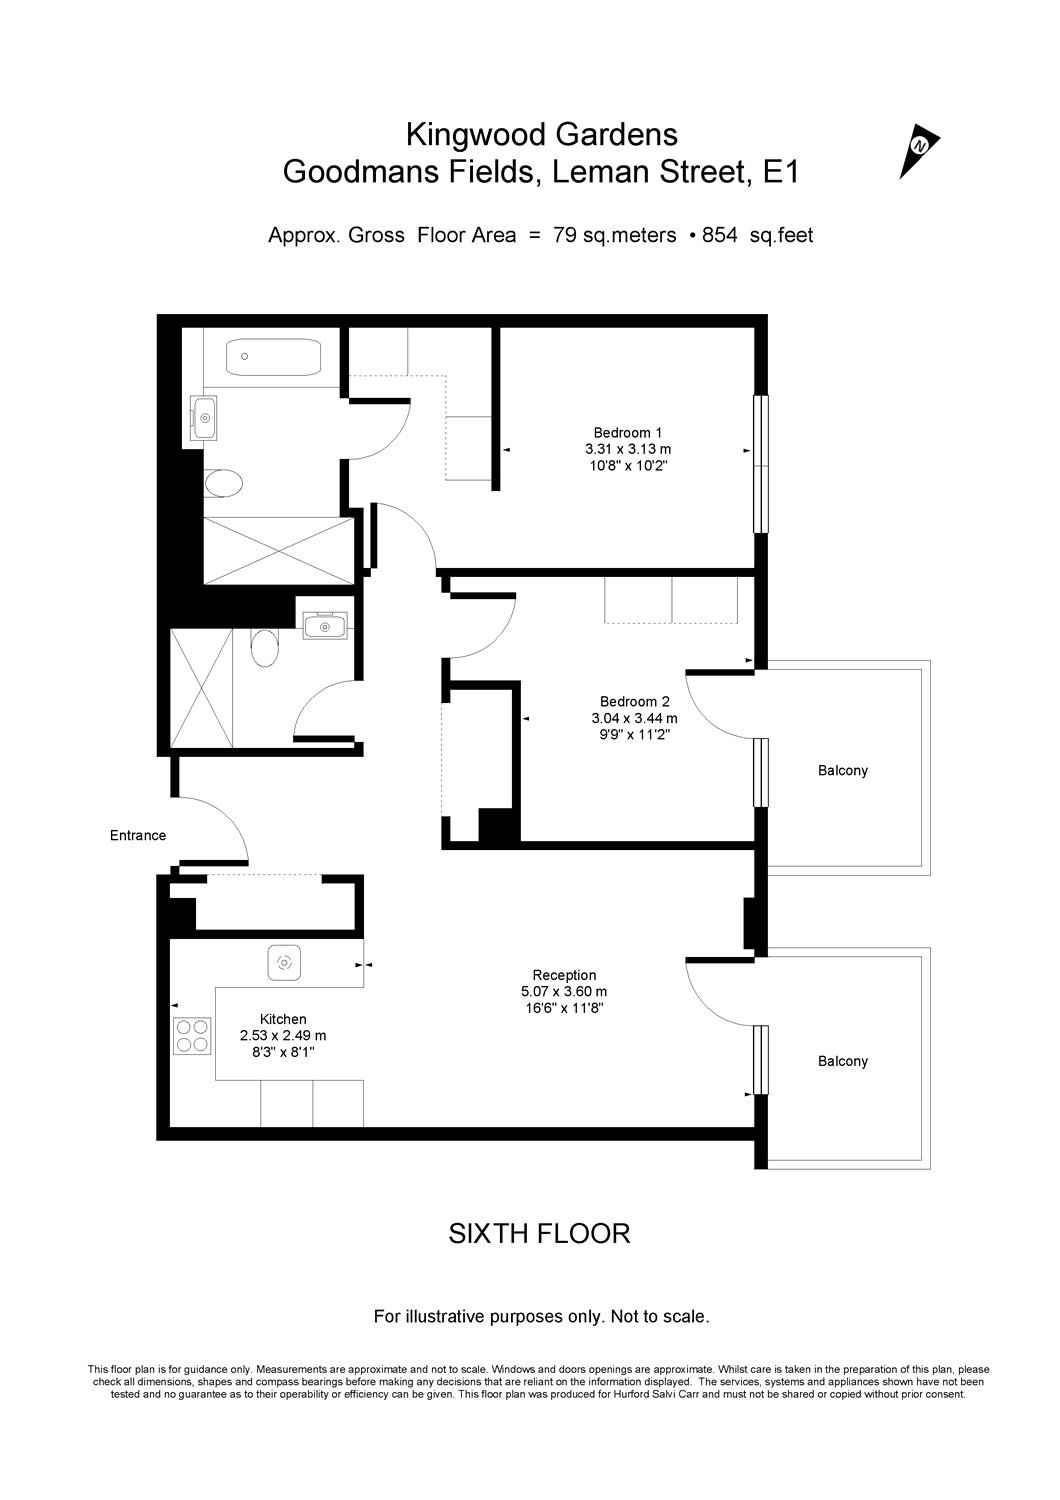 Goodman's Fields, 1 Chaucer Gardens, London, E1 floorplan